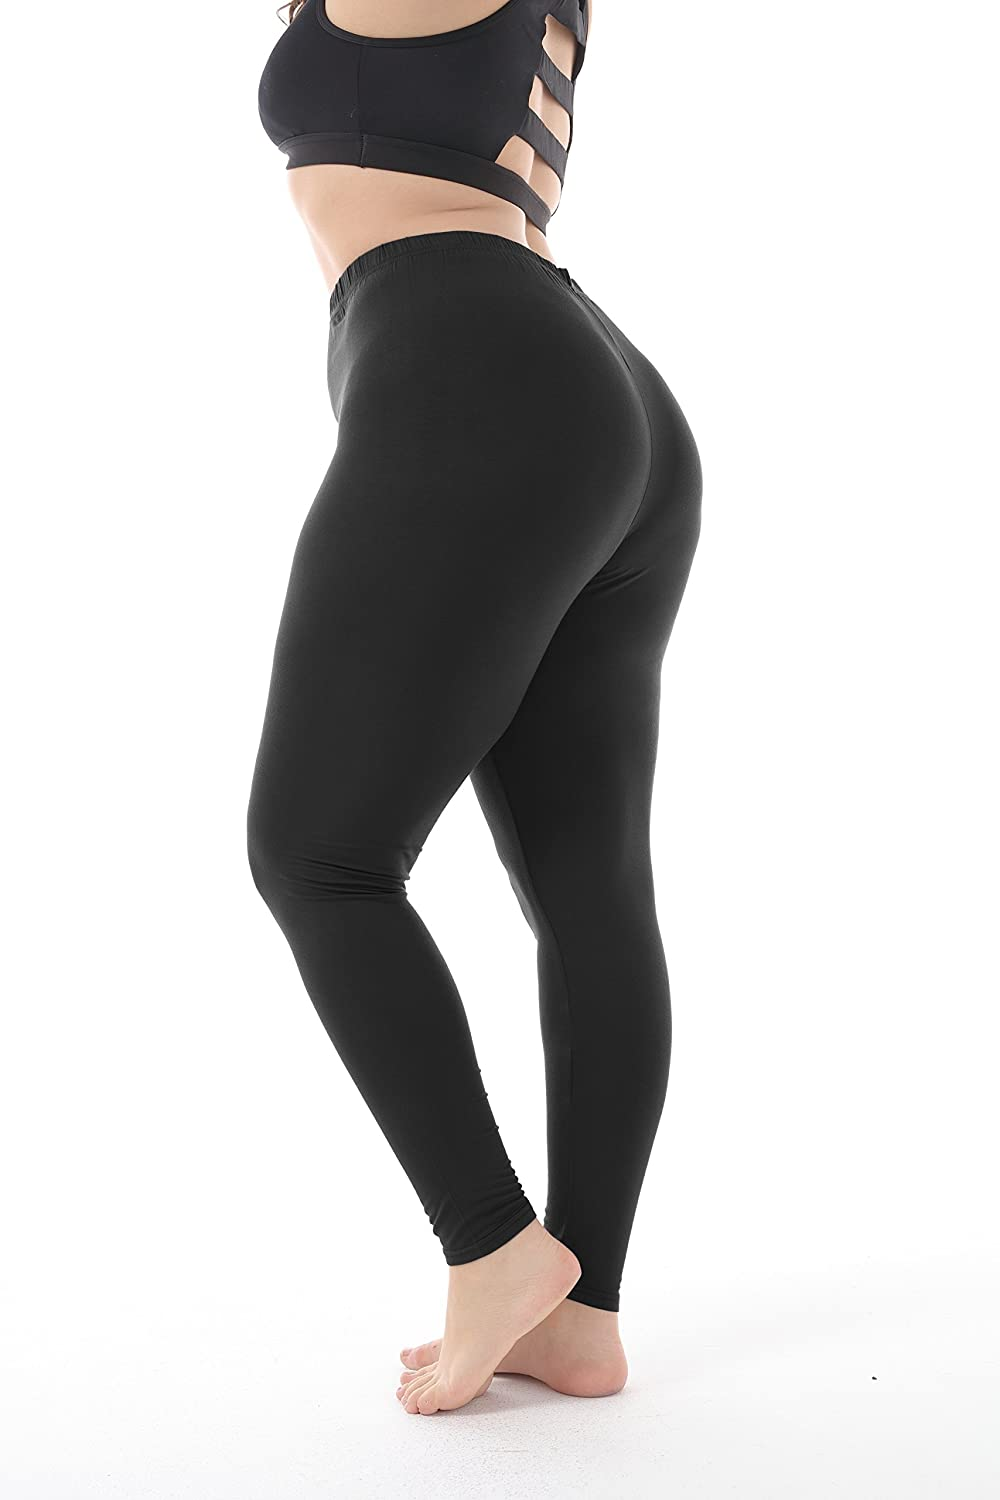 9861a7acbbe6f Zerdocean Women's Plus Size Summer Lightweight Breathable Full Length  Leggings at Amazon Women's Clothing store: